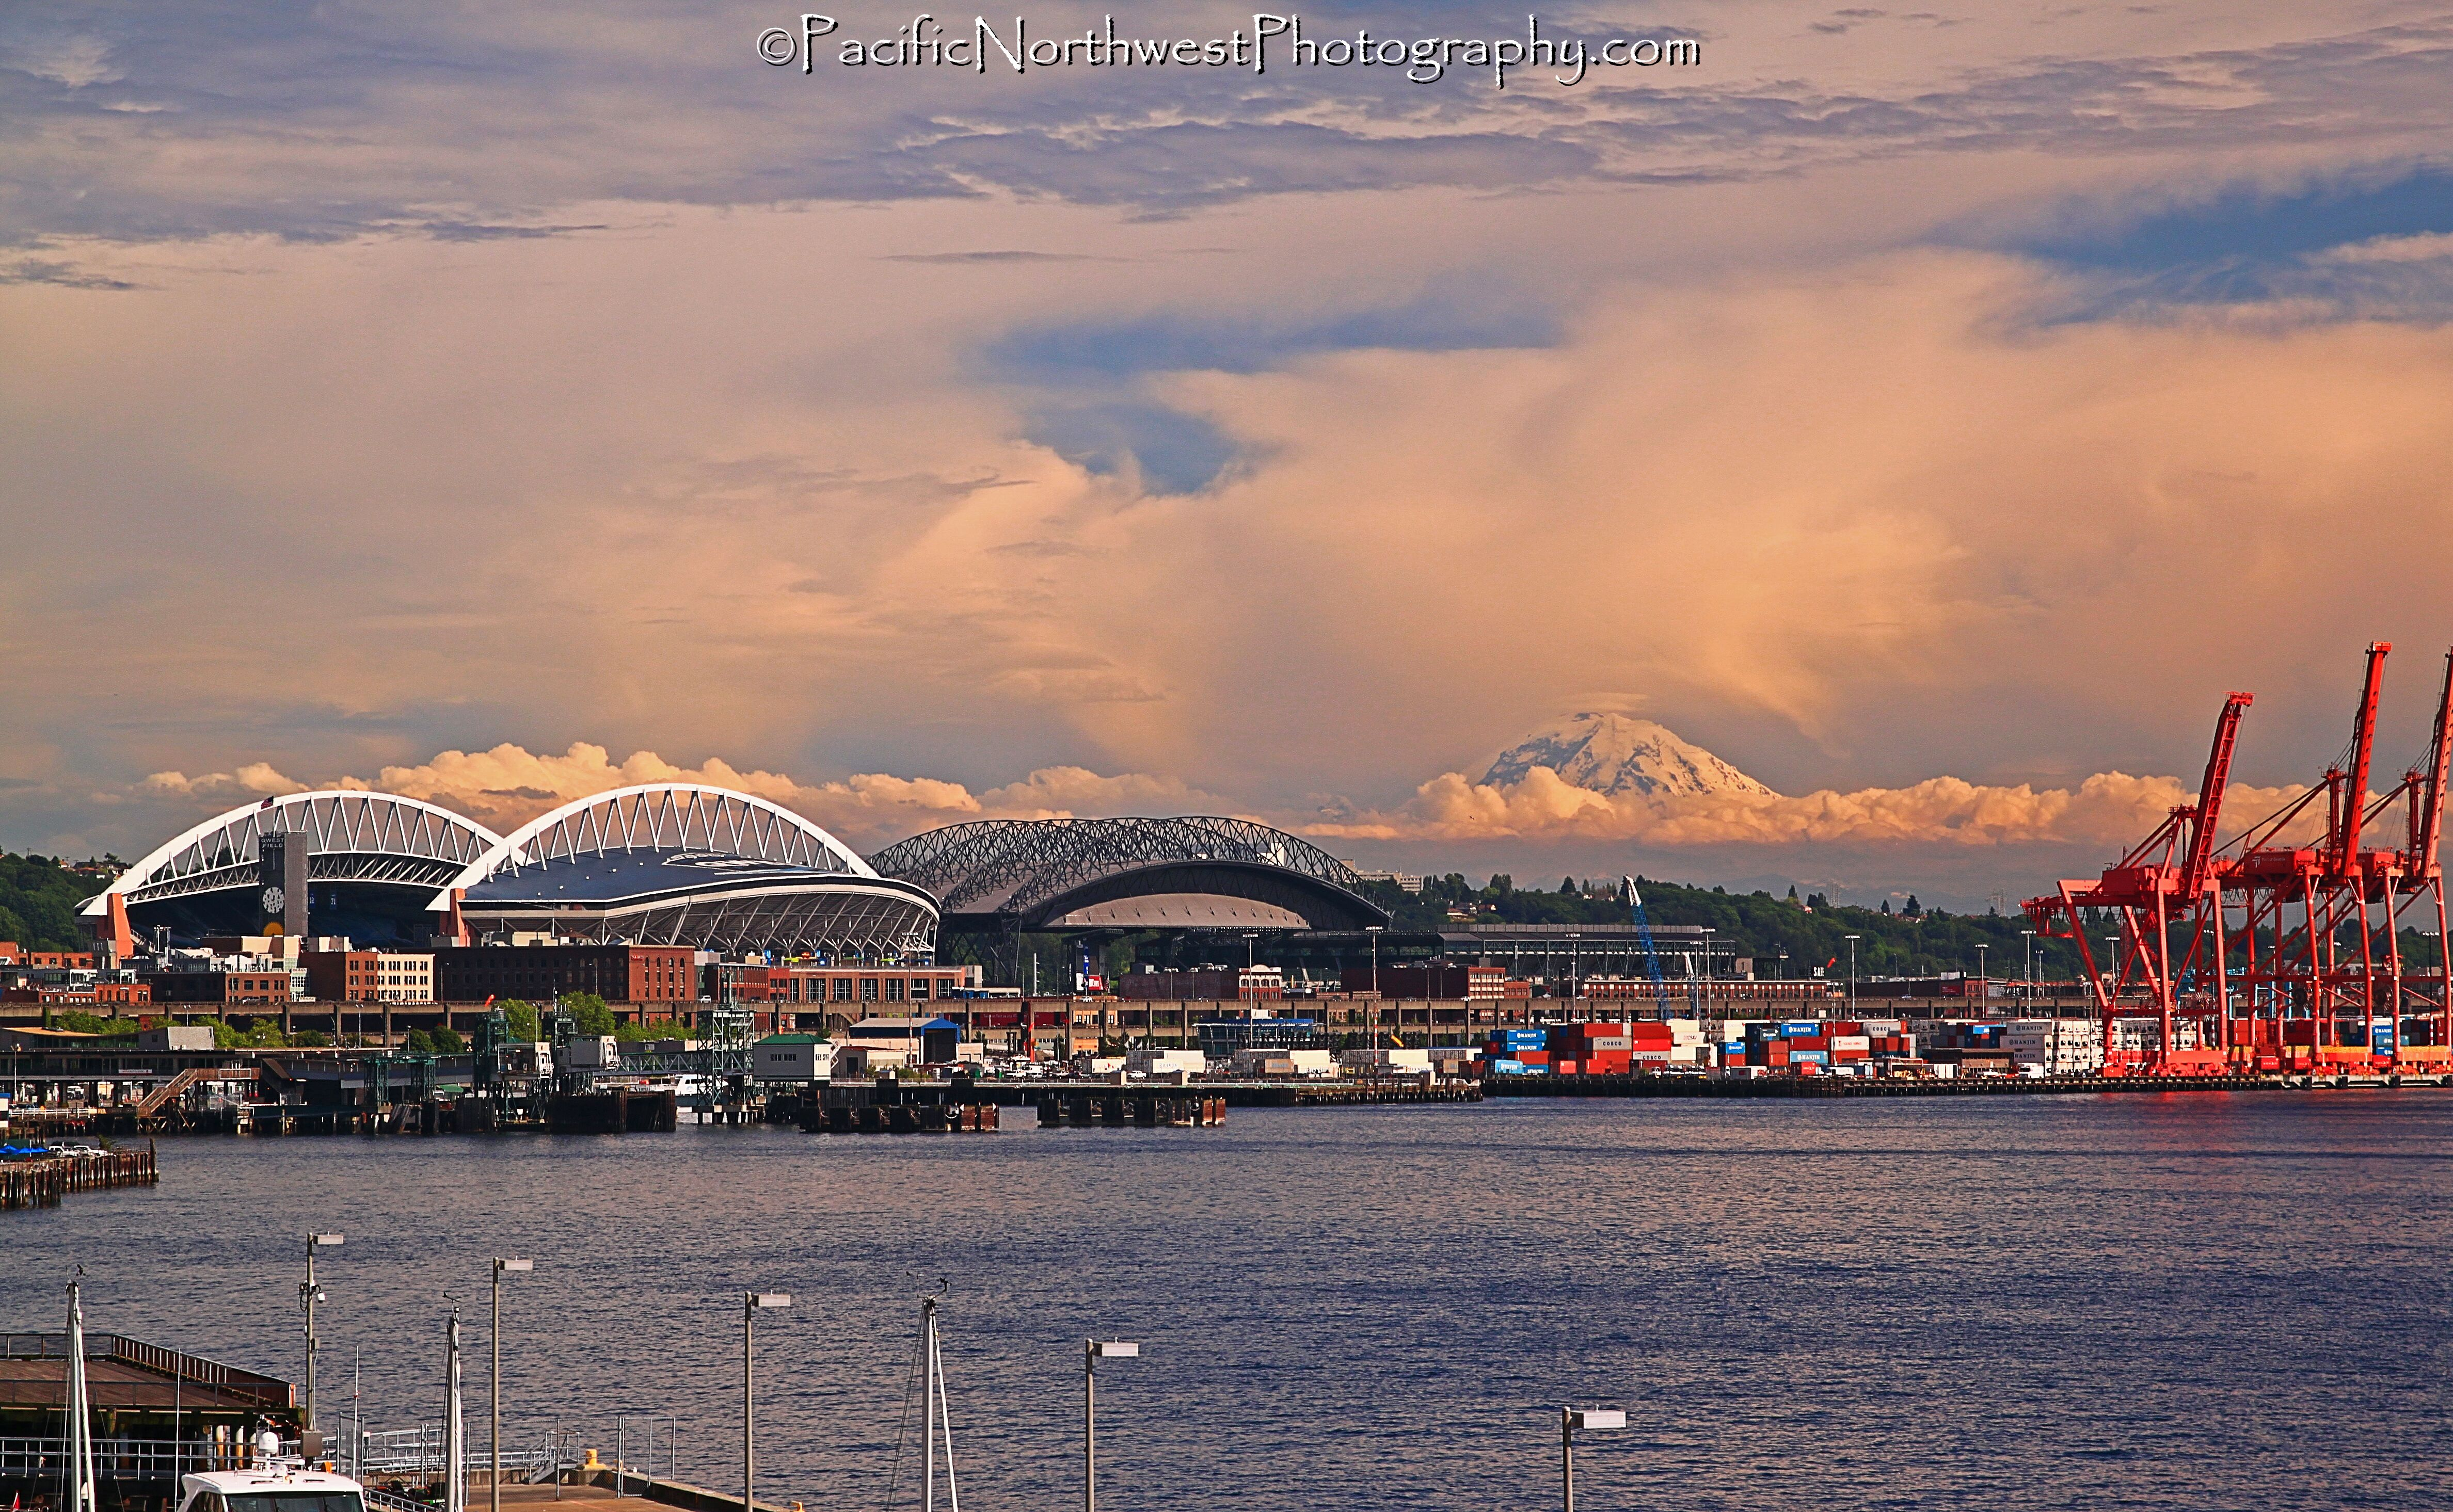 City, stadium, water, cranes, clouds and mountain